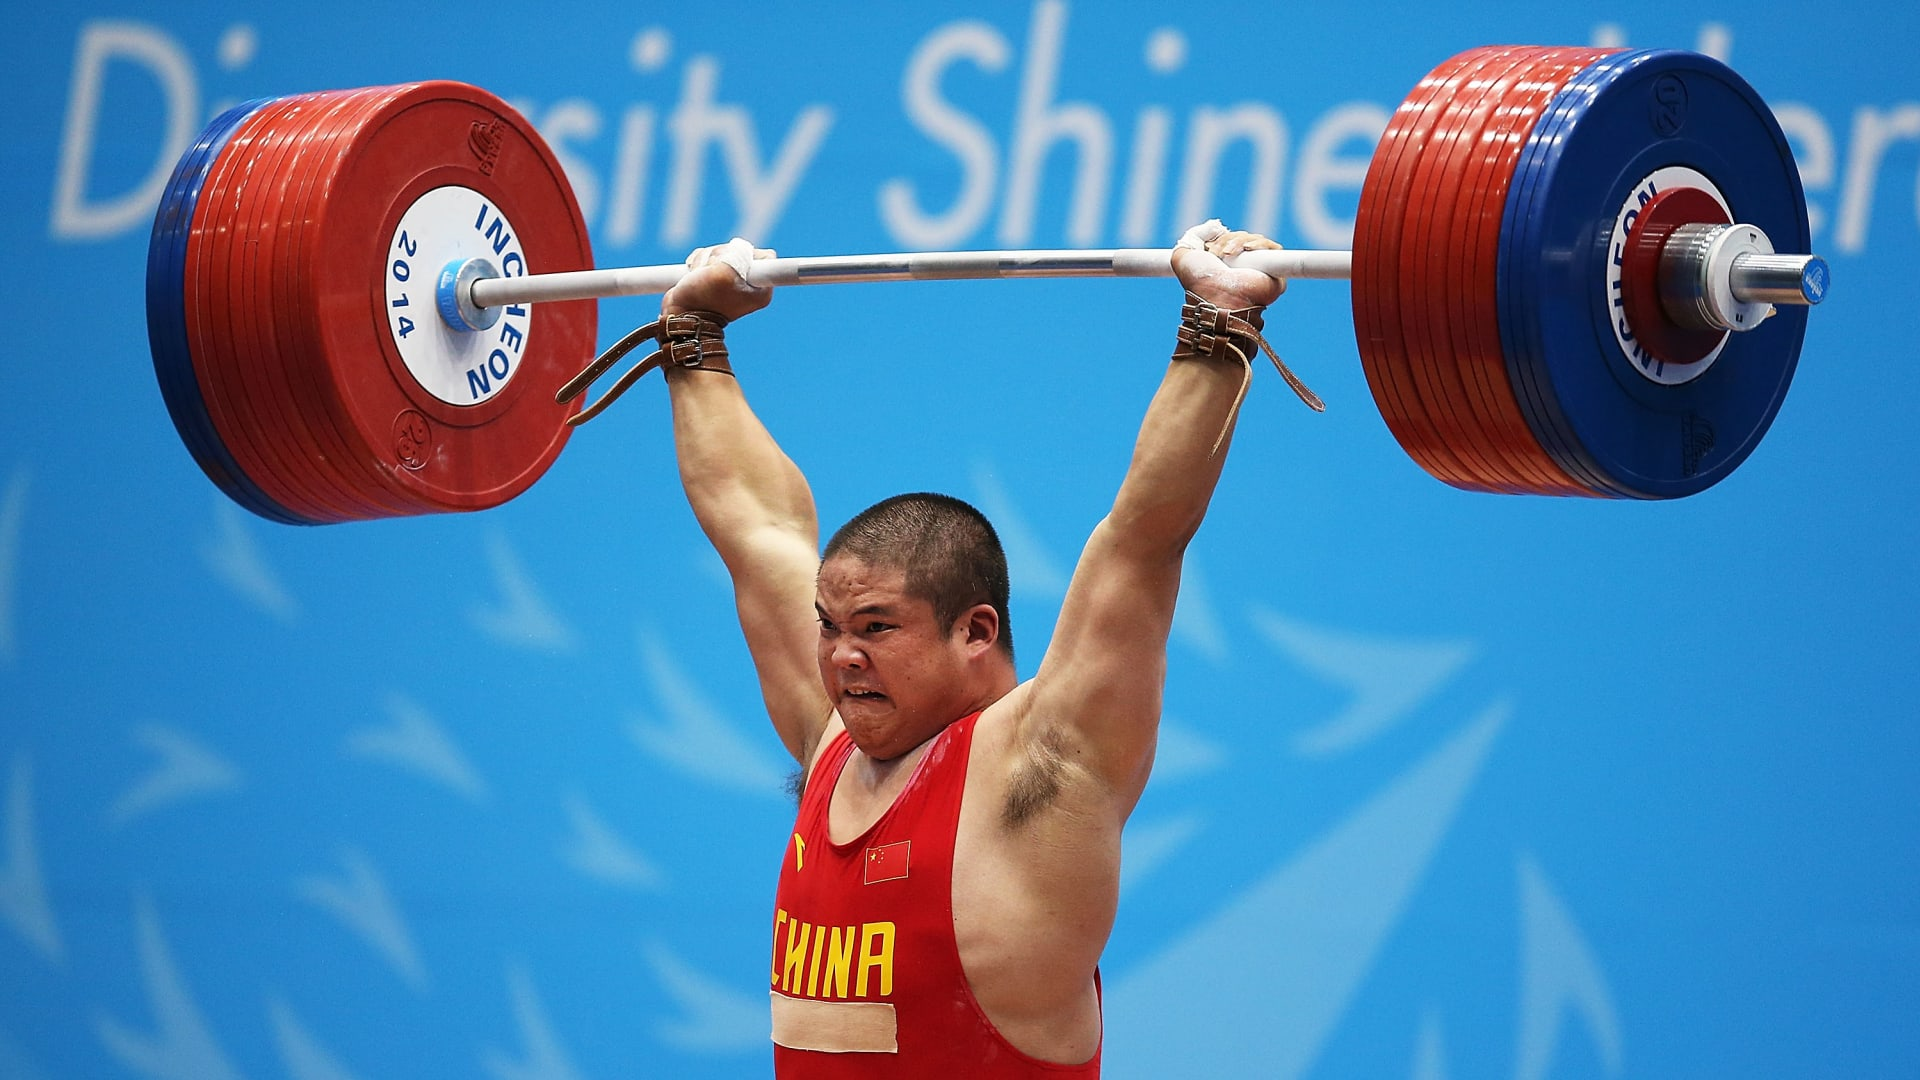 2018 Iwf Weightlifting World Championships Who And How To Watch